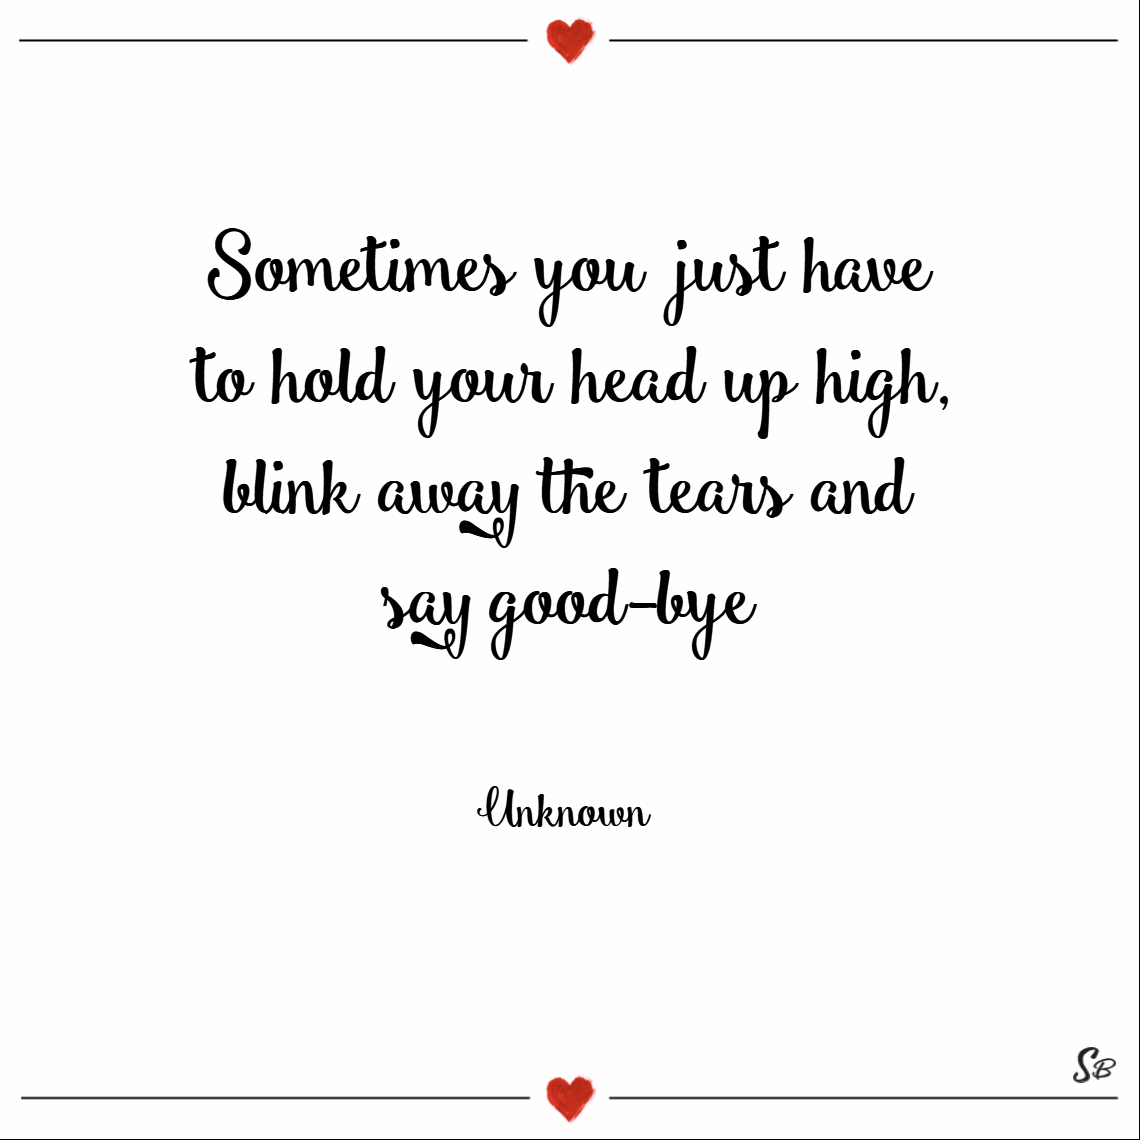 Sometimes you just have to hold your head up high, blink away the tears and say good bye. – unknown